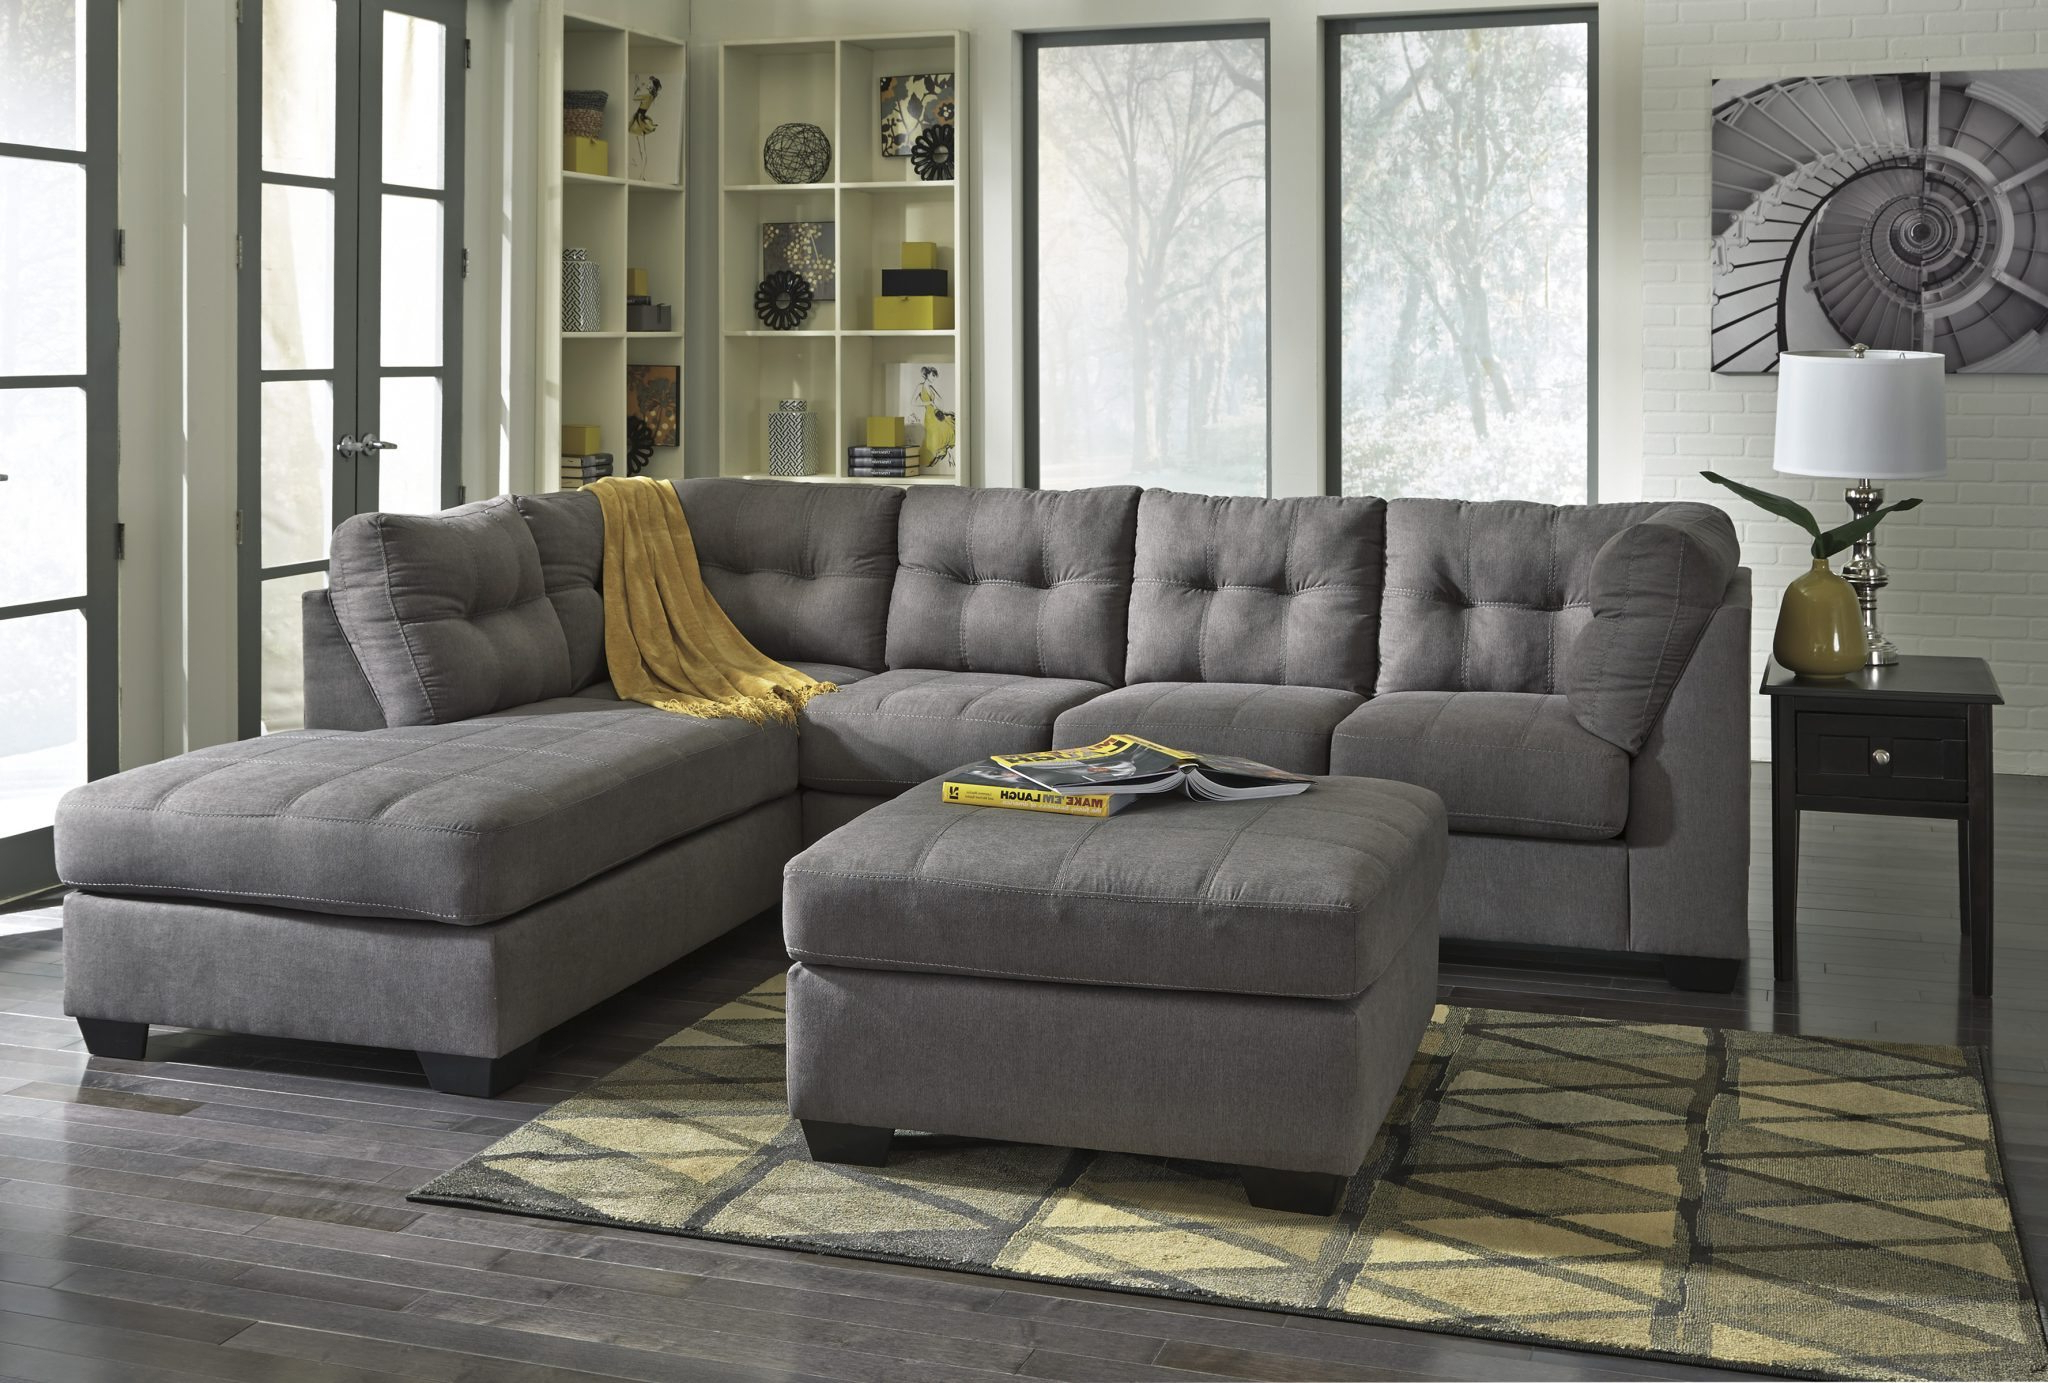 Widely Used Meyer 3 Piece Sectionals With Laf Chaise With Regard To Ashley 452 Maier Sectional – $ (View 20 of 20)